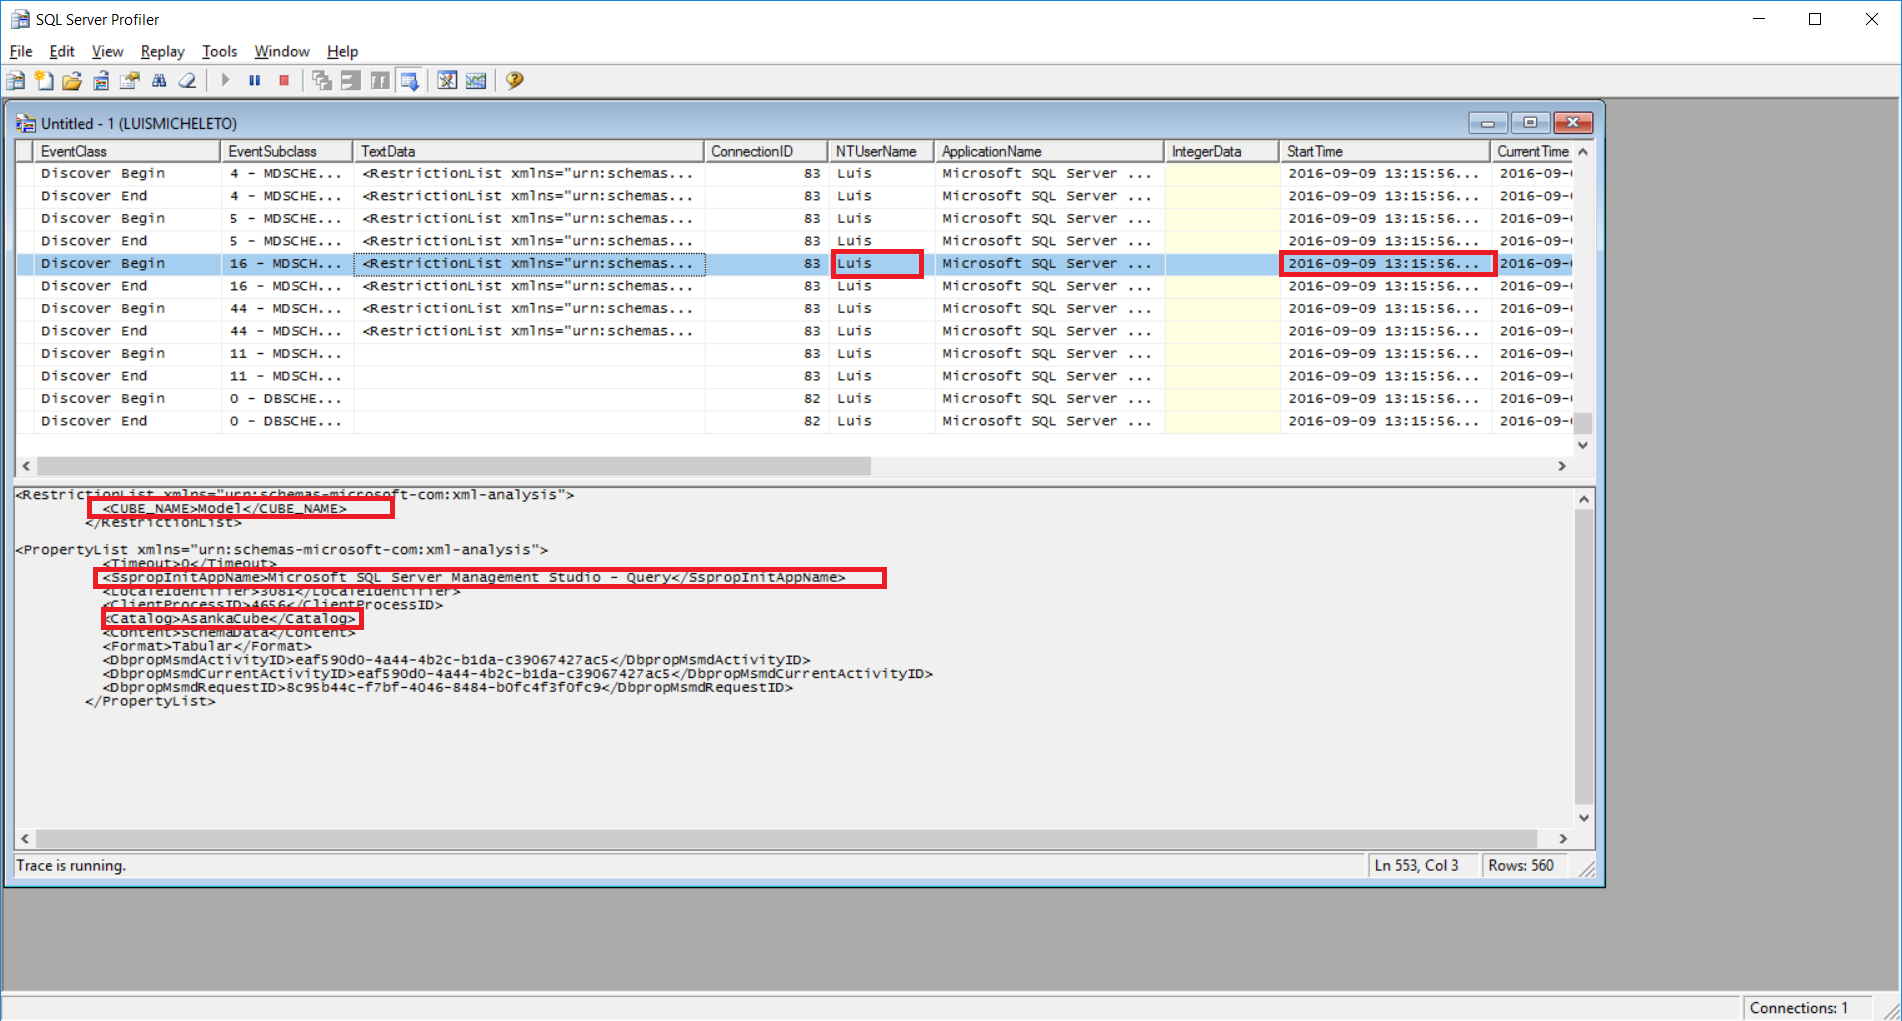 sql profiler for analysis services